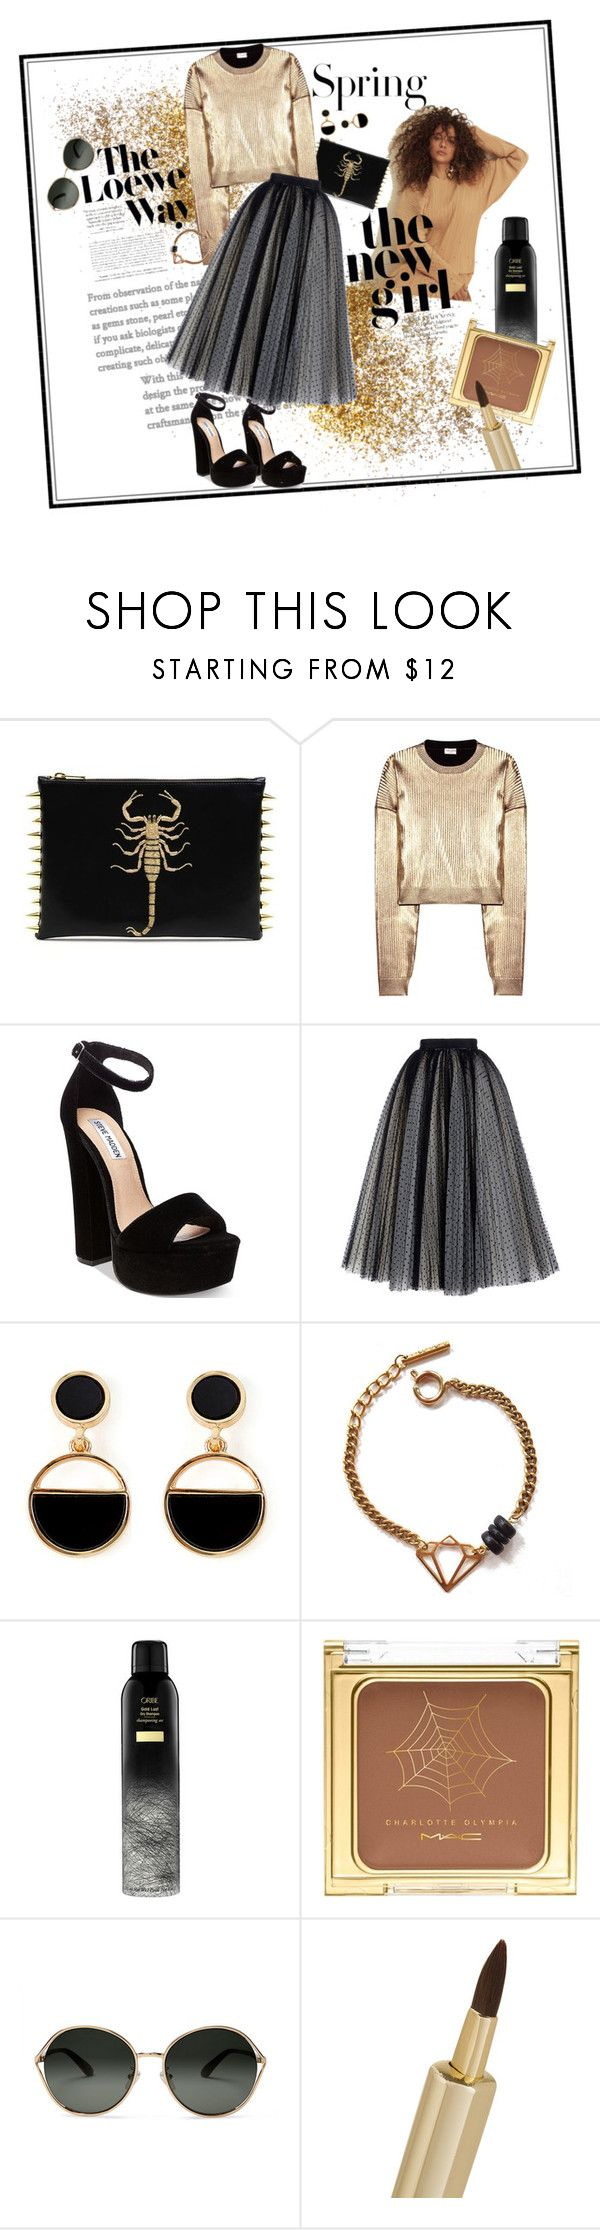 """Gold brass"" by britt-catlynne-weatherall on Polyvore featuring H&M, Yves Saint Laurent, Steve Madden, Philosophy di Lorenzo Serafini, Warehouse, Tilly Doro, Loewe, MAC Cosmetics, TOMS and By Terry"